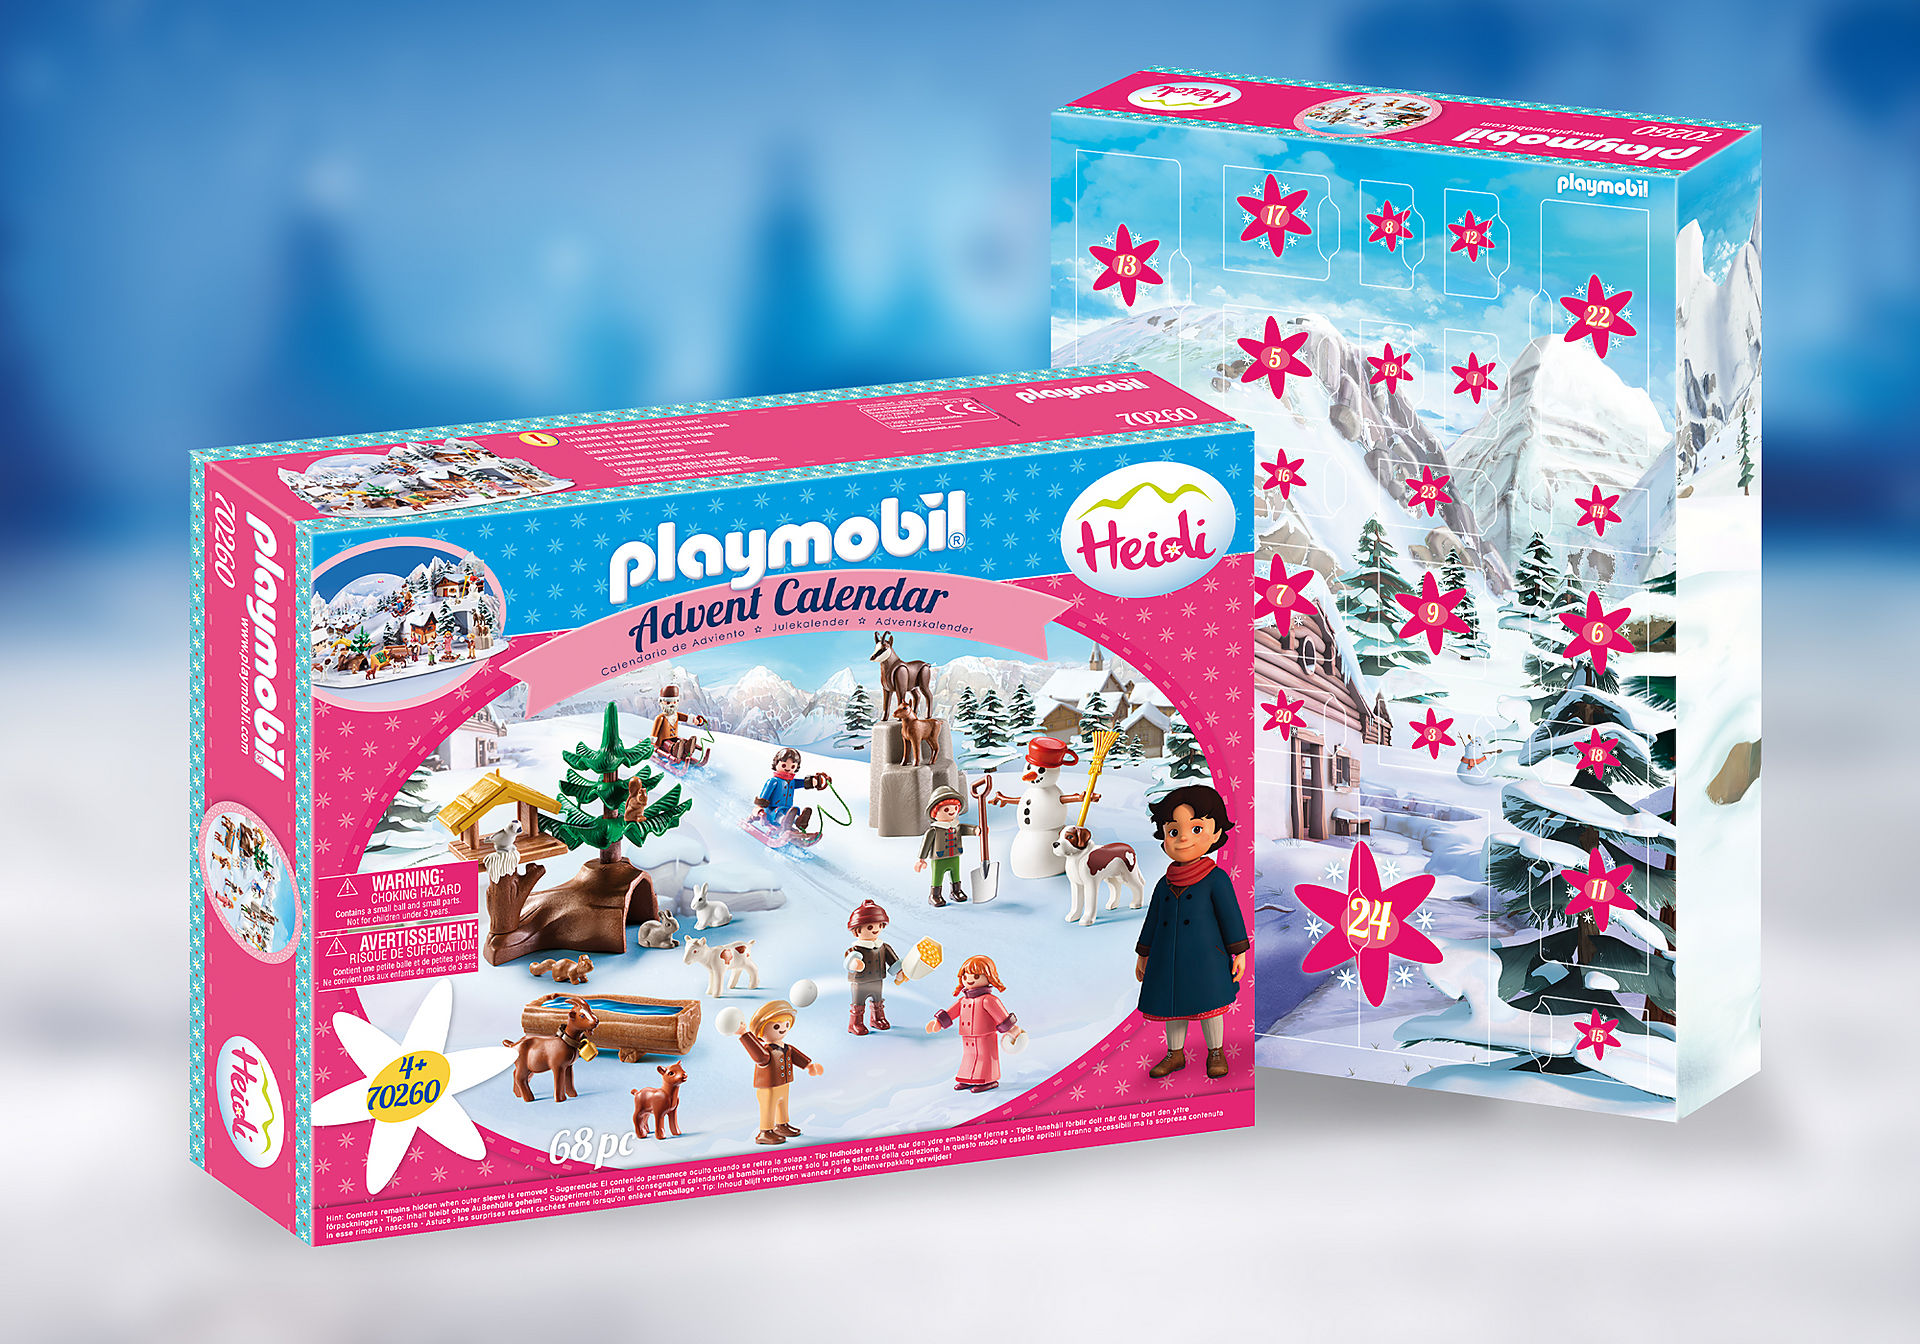 70260 Advent Calendar - Heidi's Winter World zoom image1